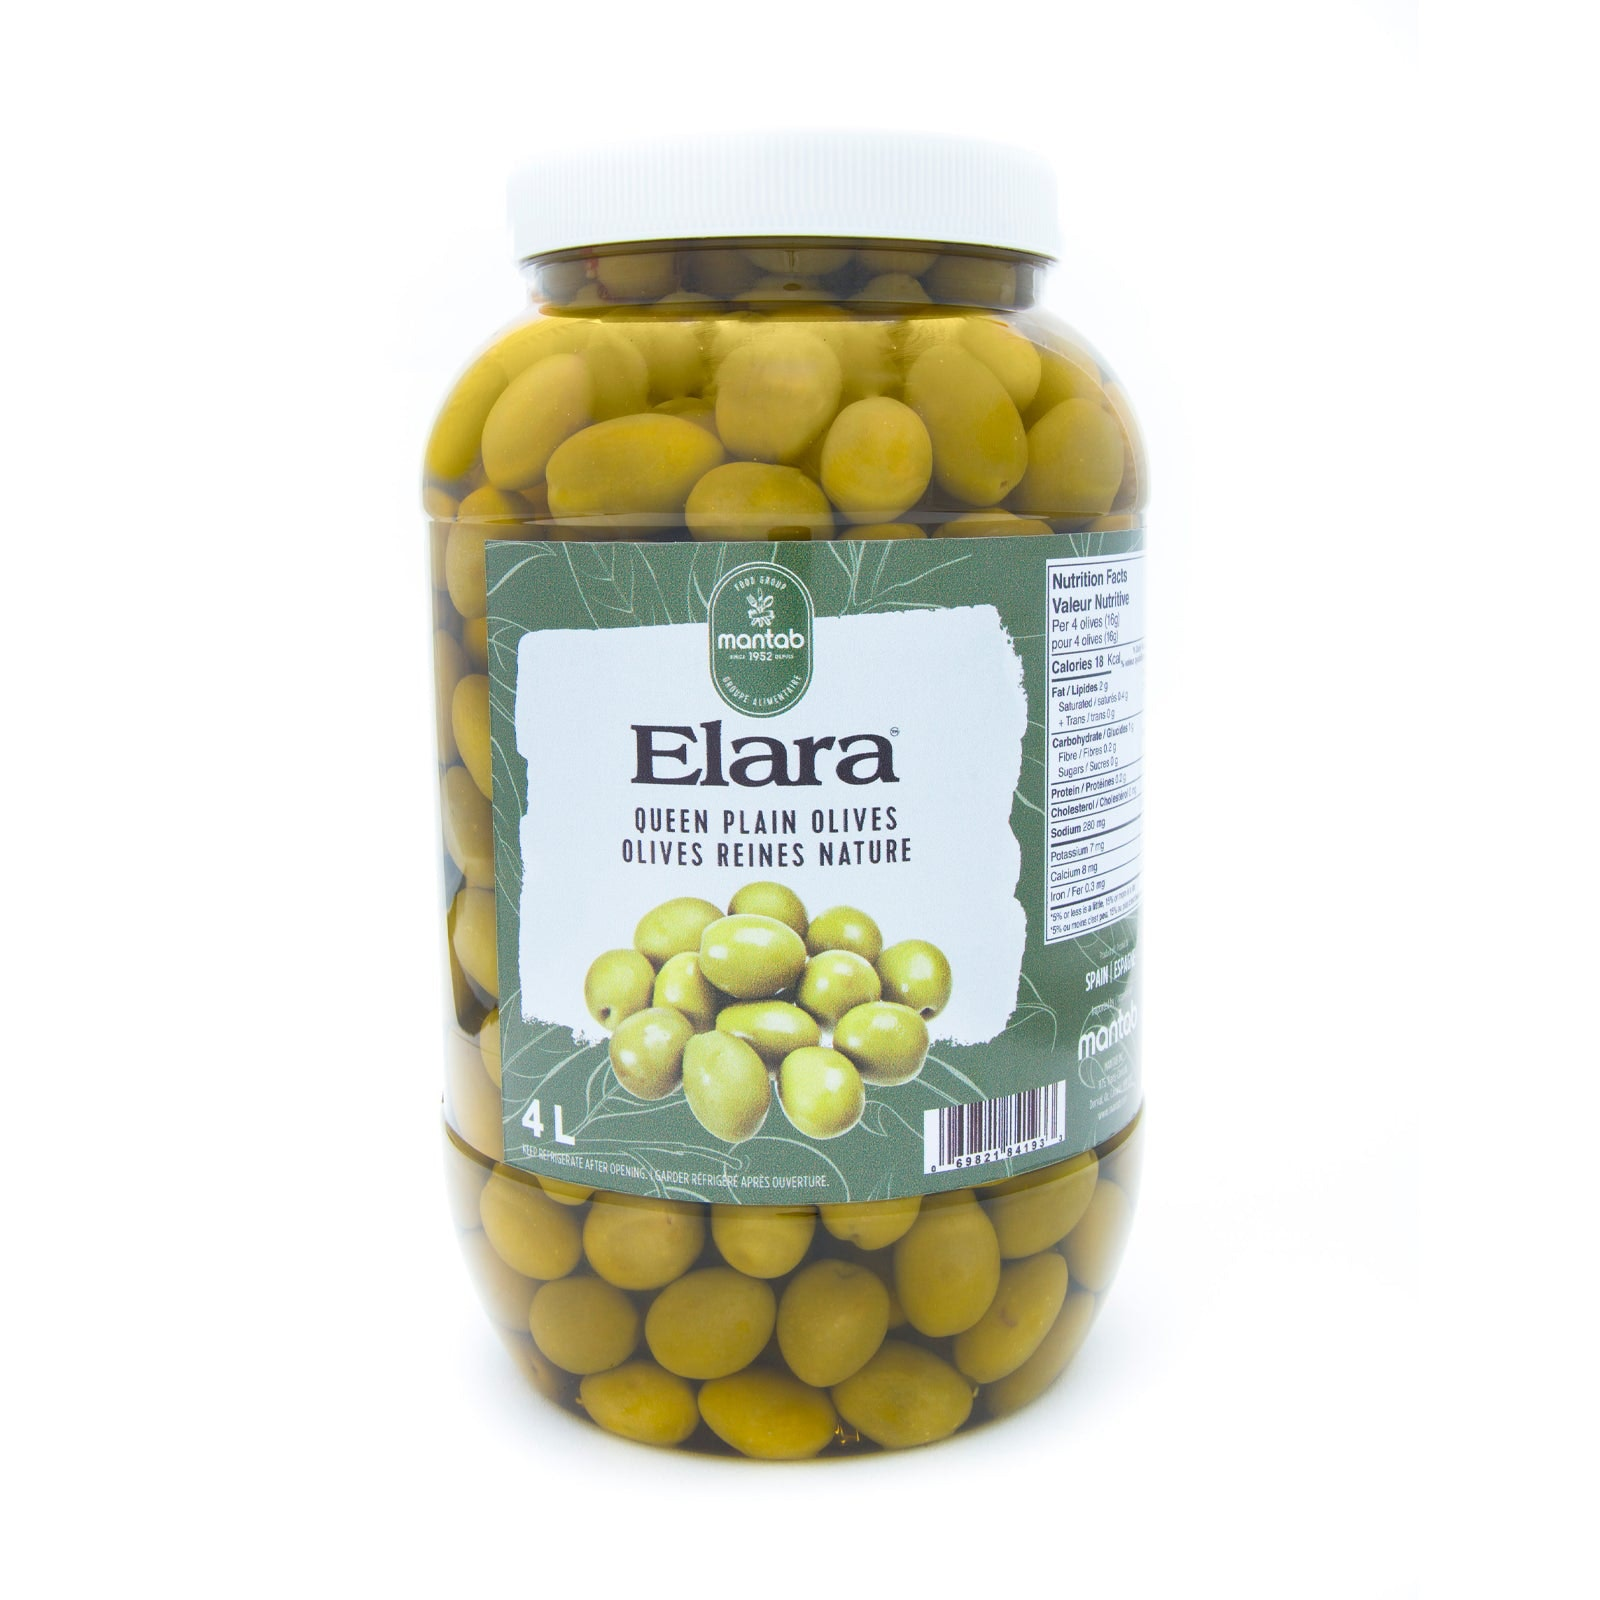 Elara Queen Plain Olives